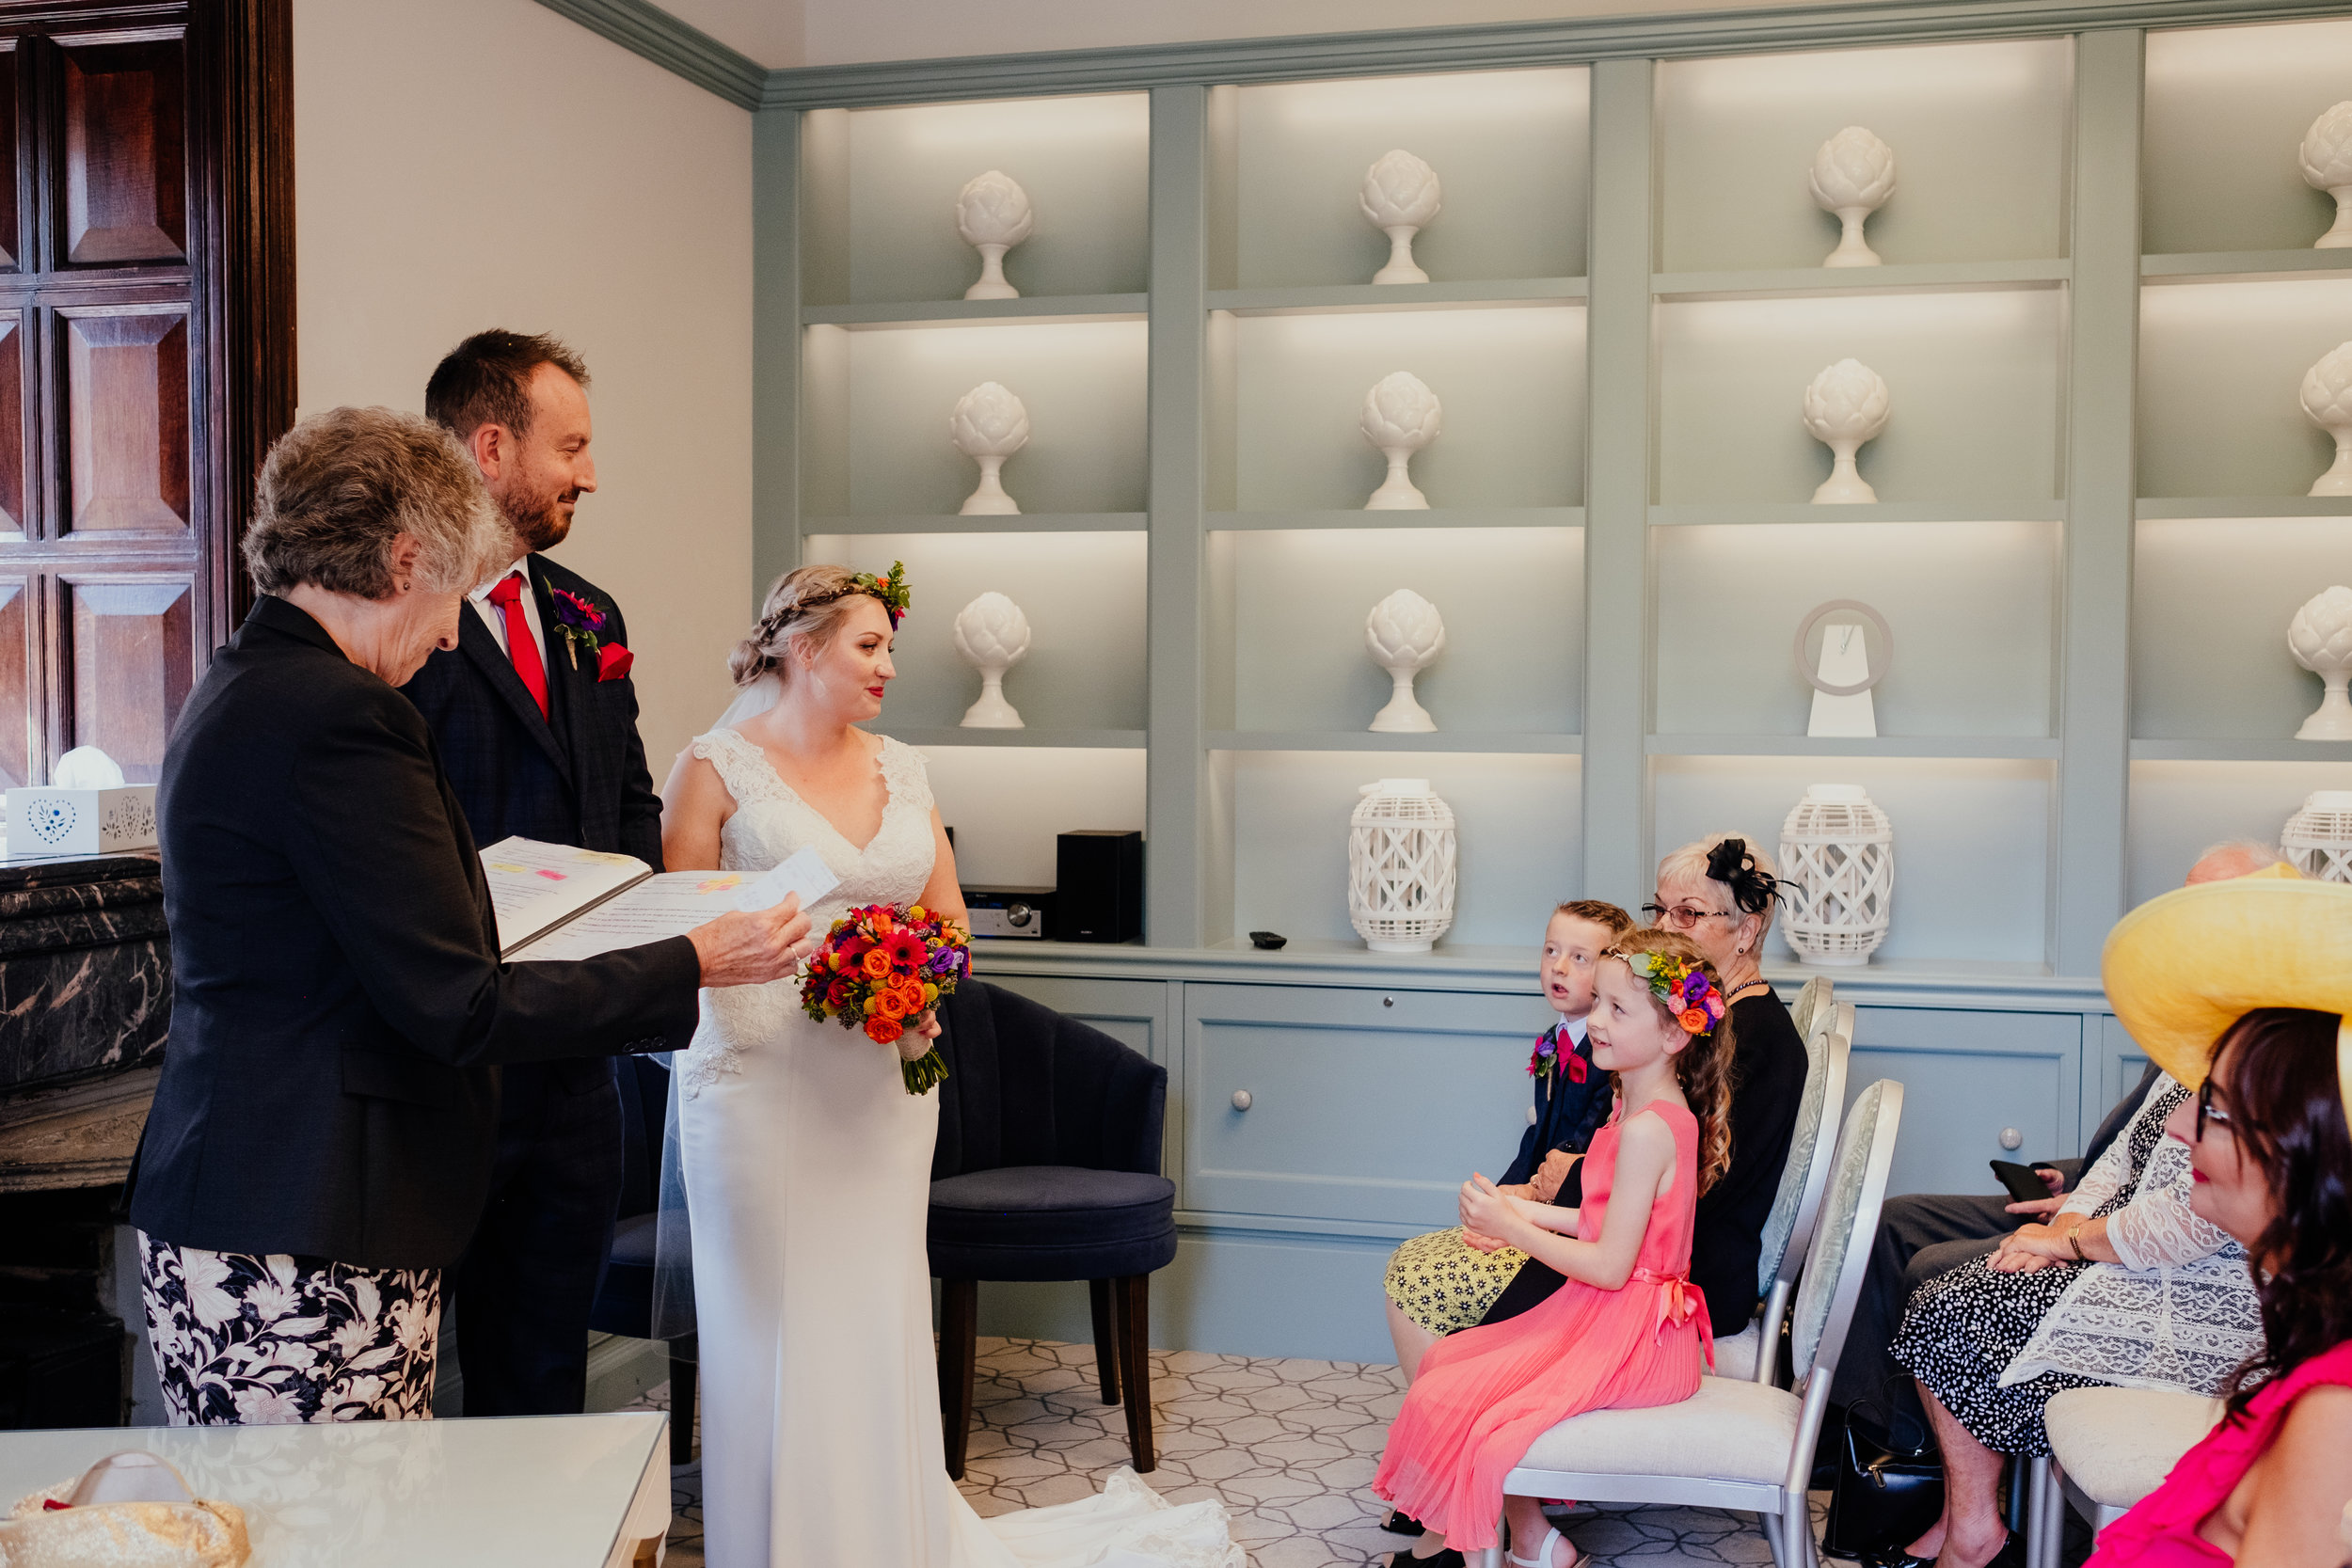 Wedding ceremony at Southover Grange in Lewes | Bride and Groom smile at their children